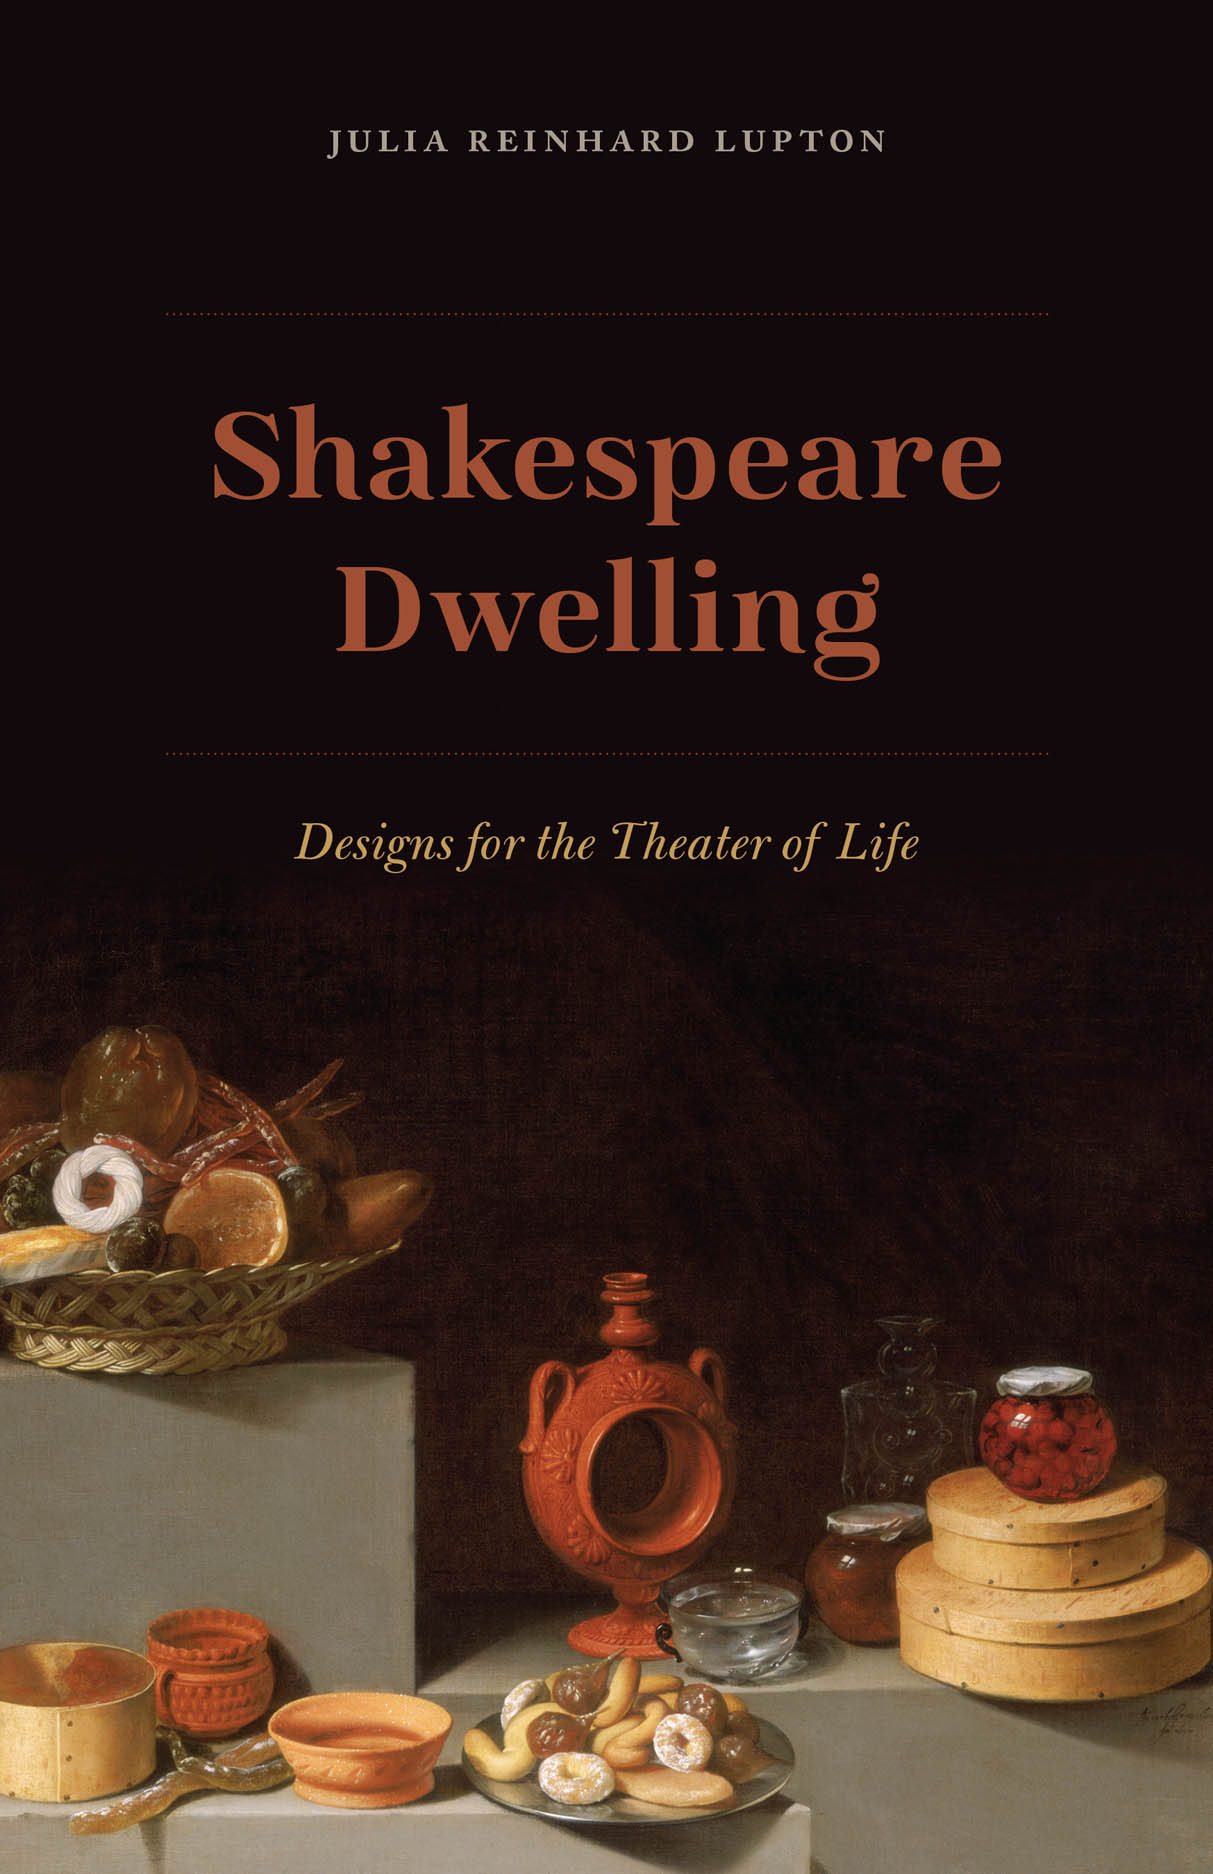 Shakespeare Dwelling: Designs for the Theater of Life